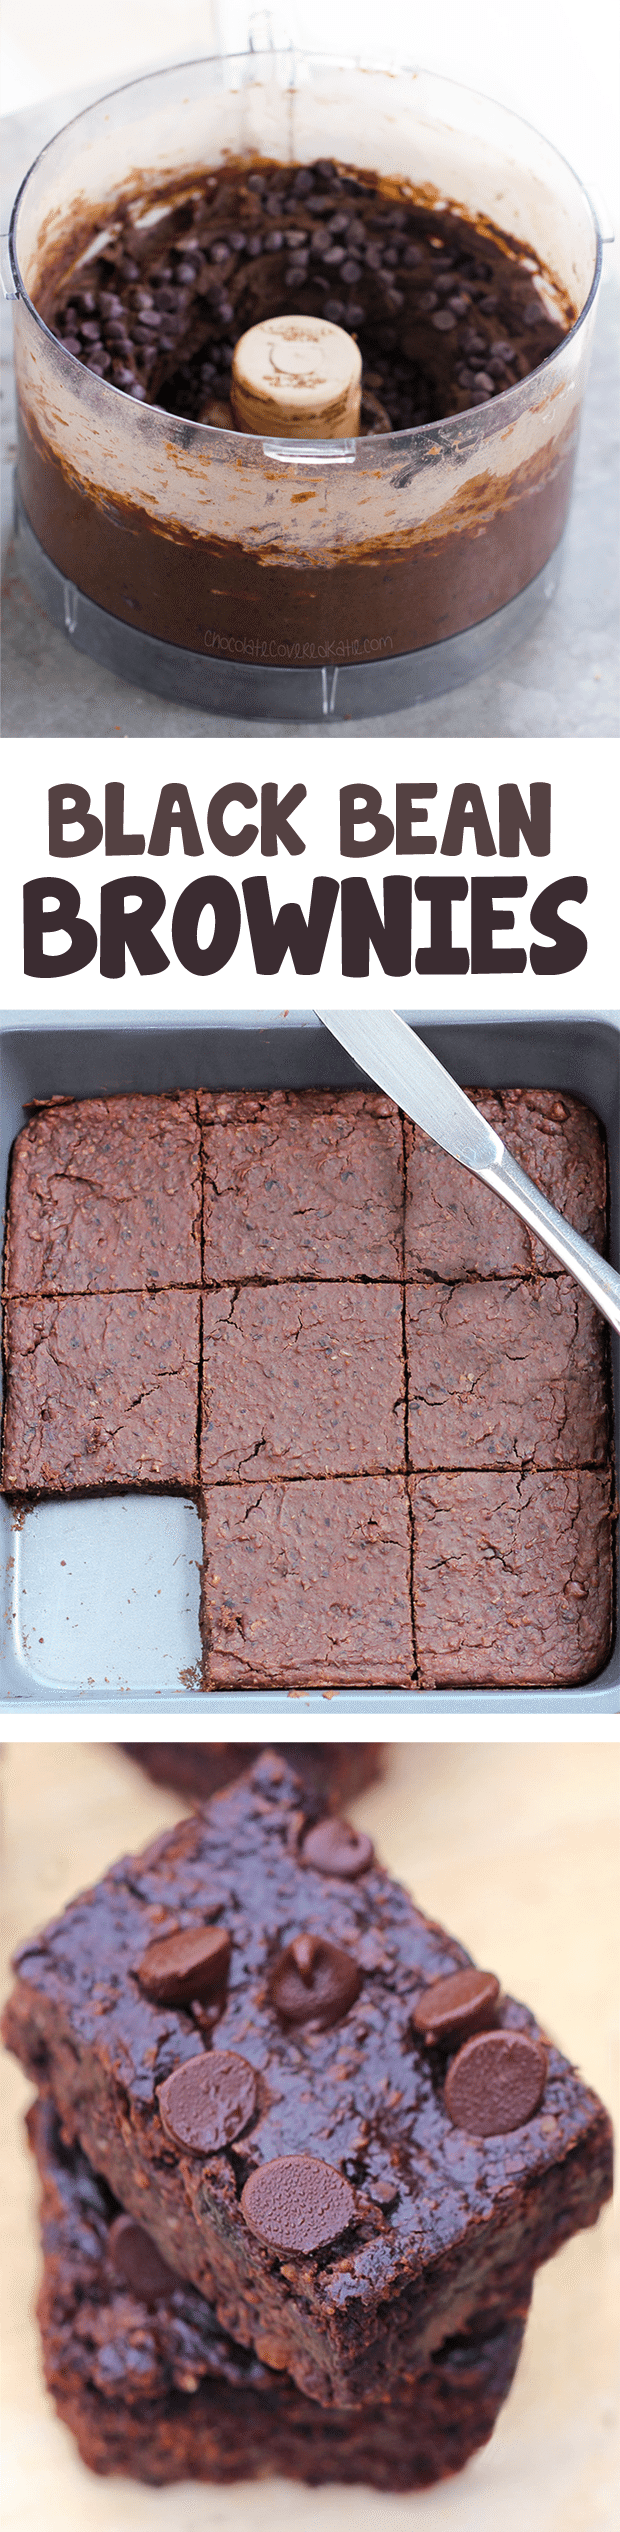 Flourless Black Bean Brownies - Rich, FUDGY better-than-boxed brownies, one of the most popular recipes I've EVER made! @choccoveredkt https://chocolatecoveredkatie.com/2012/09/06/no-flour-black-bean-brownies/